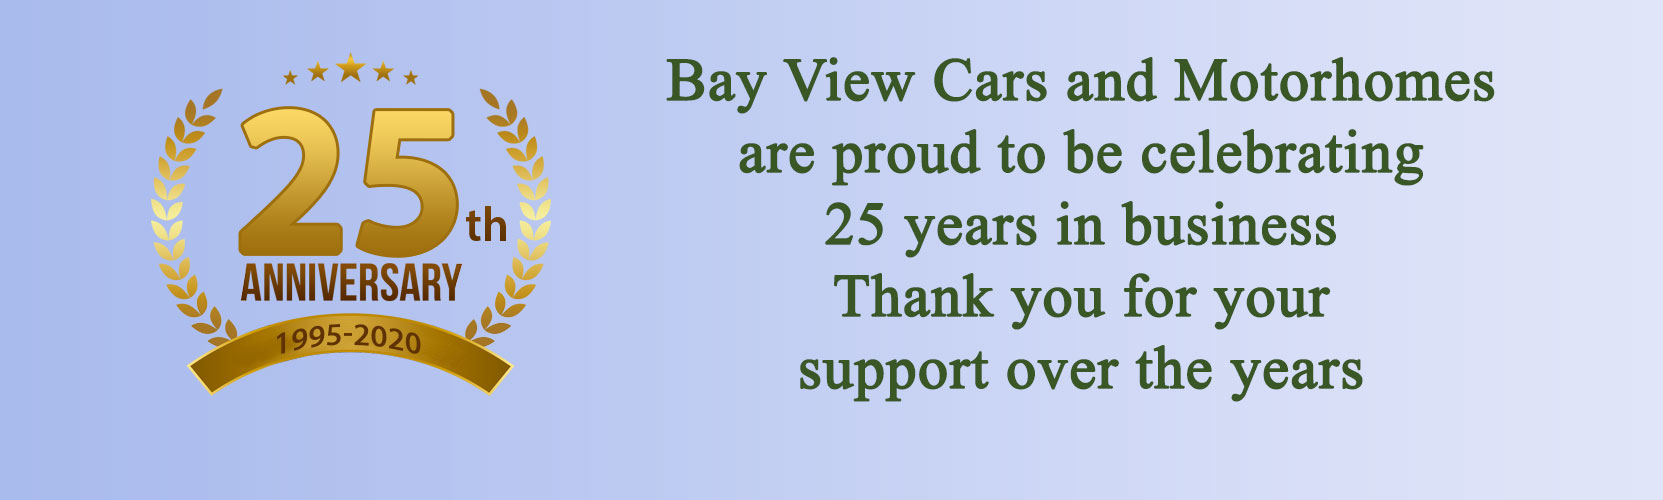 Celebrating 25 years at Bay View Cars